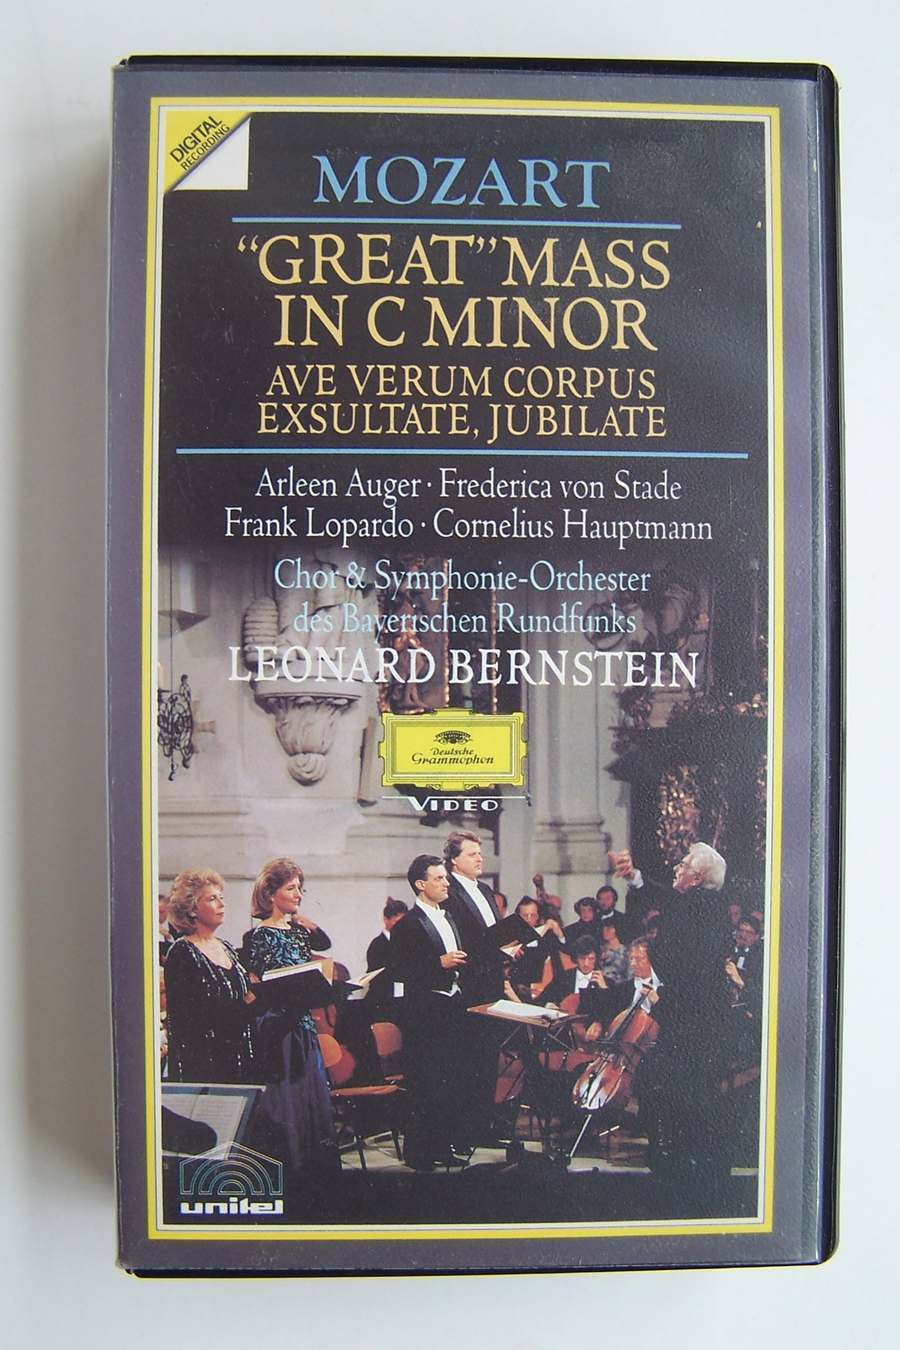 Mozart: Great Mass In C Minor VHS Tape